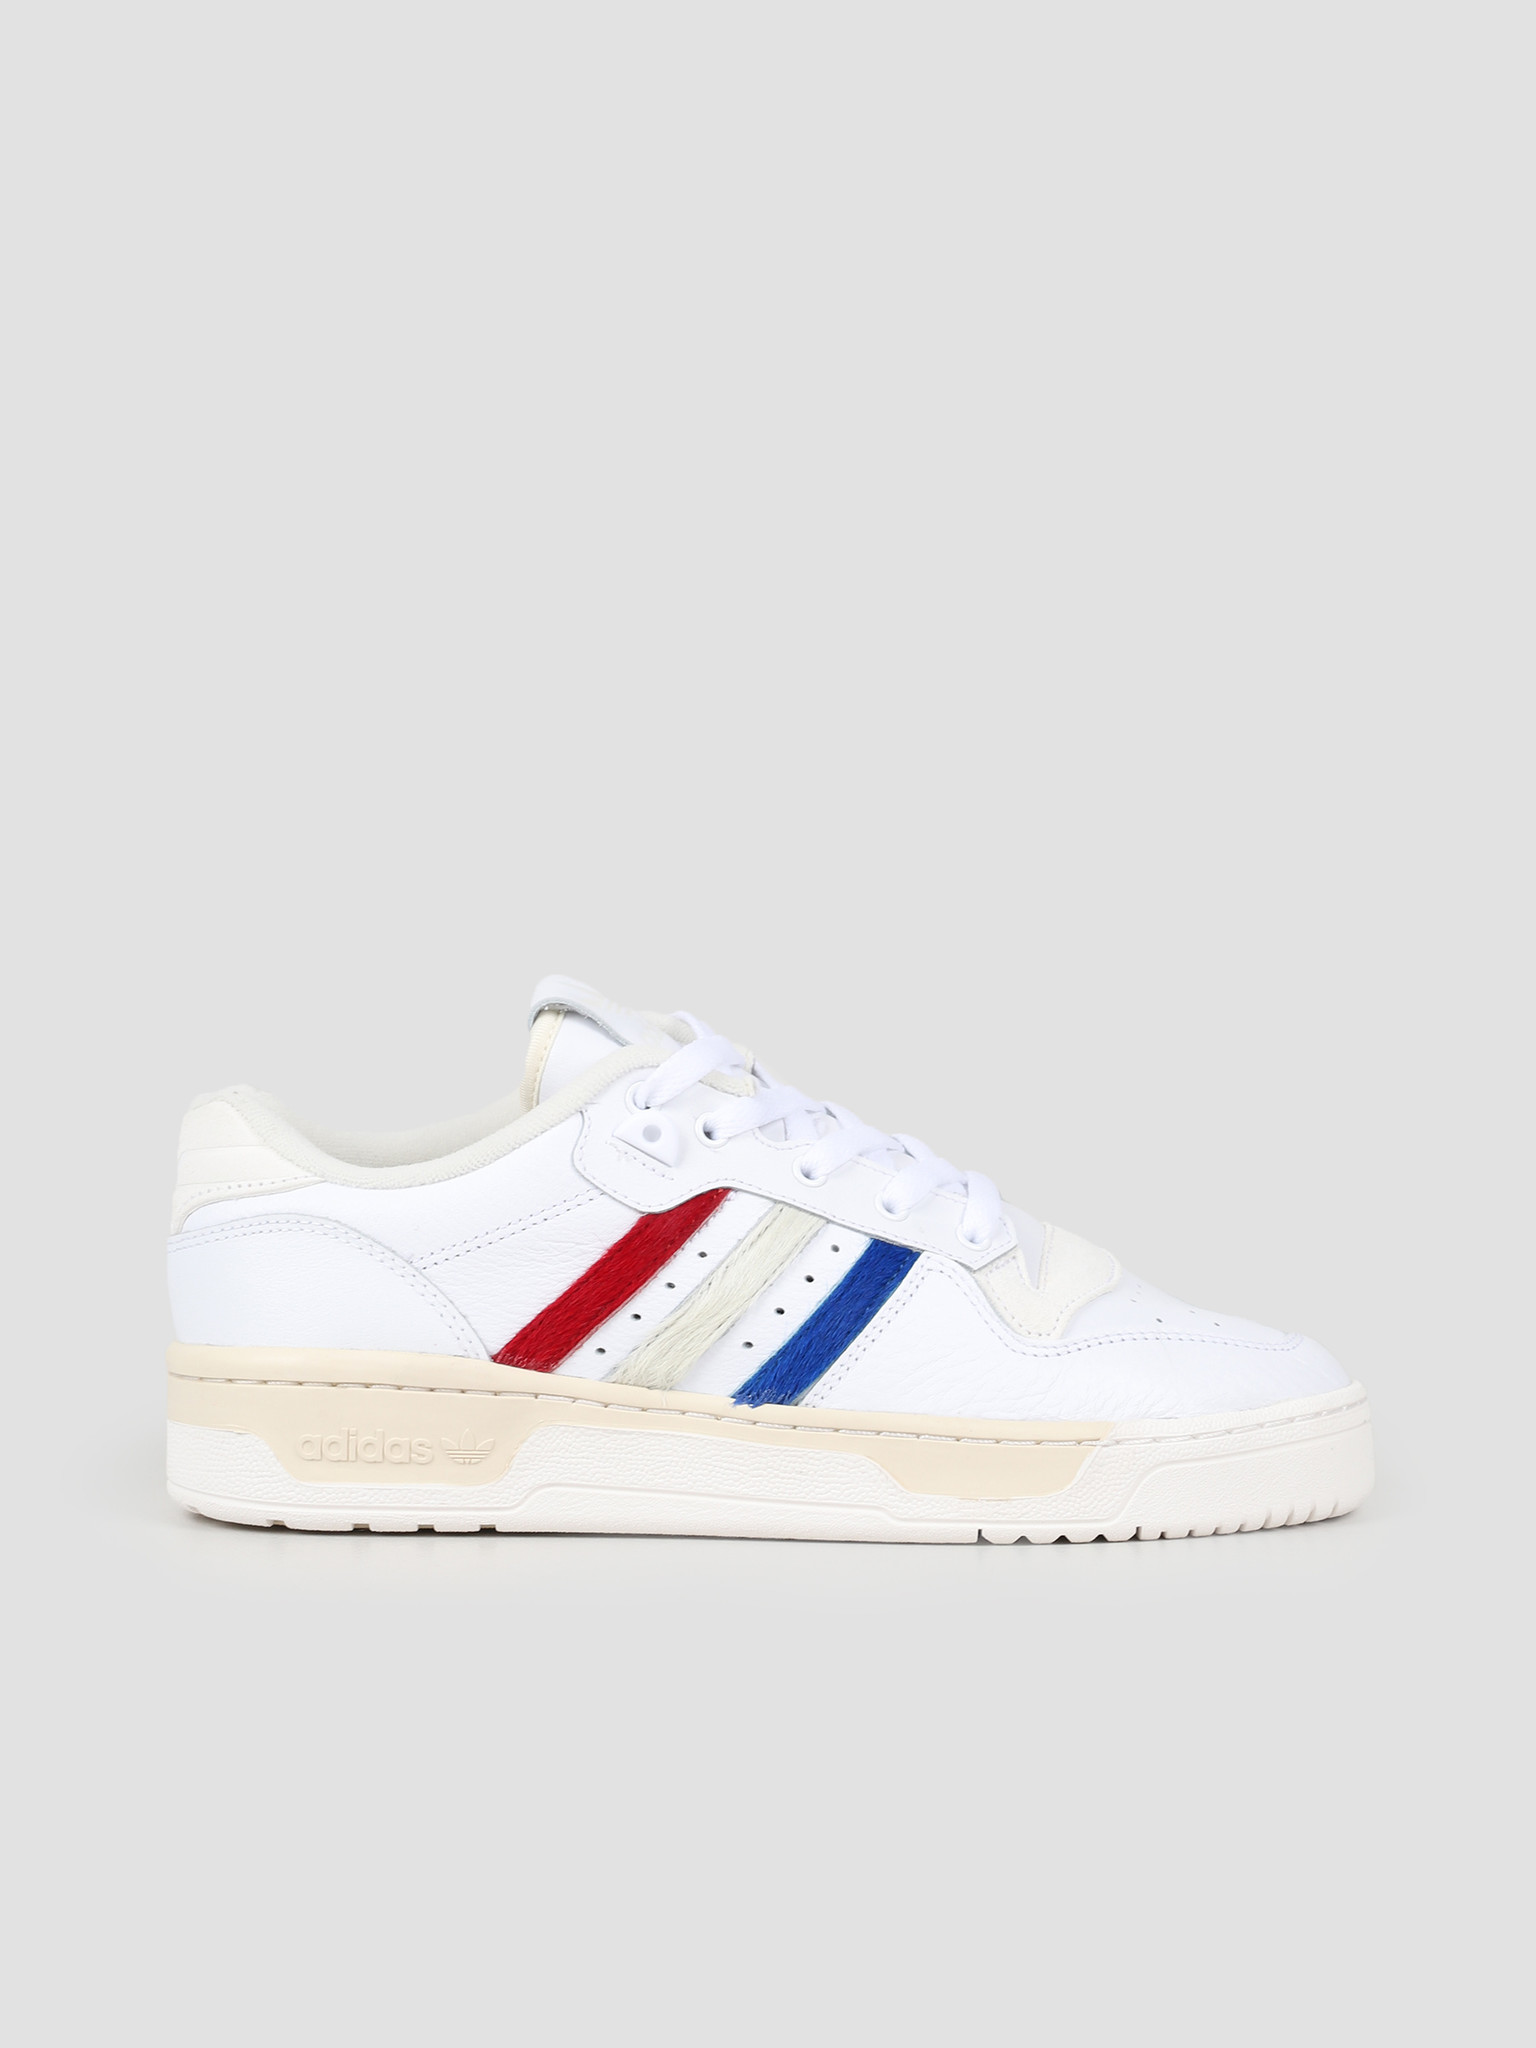 adidas adidas Rivalry Low Ftwwht Cwhite Clowhi EE4961